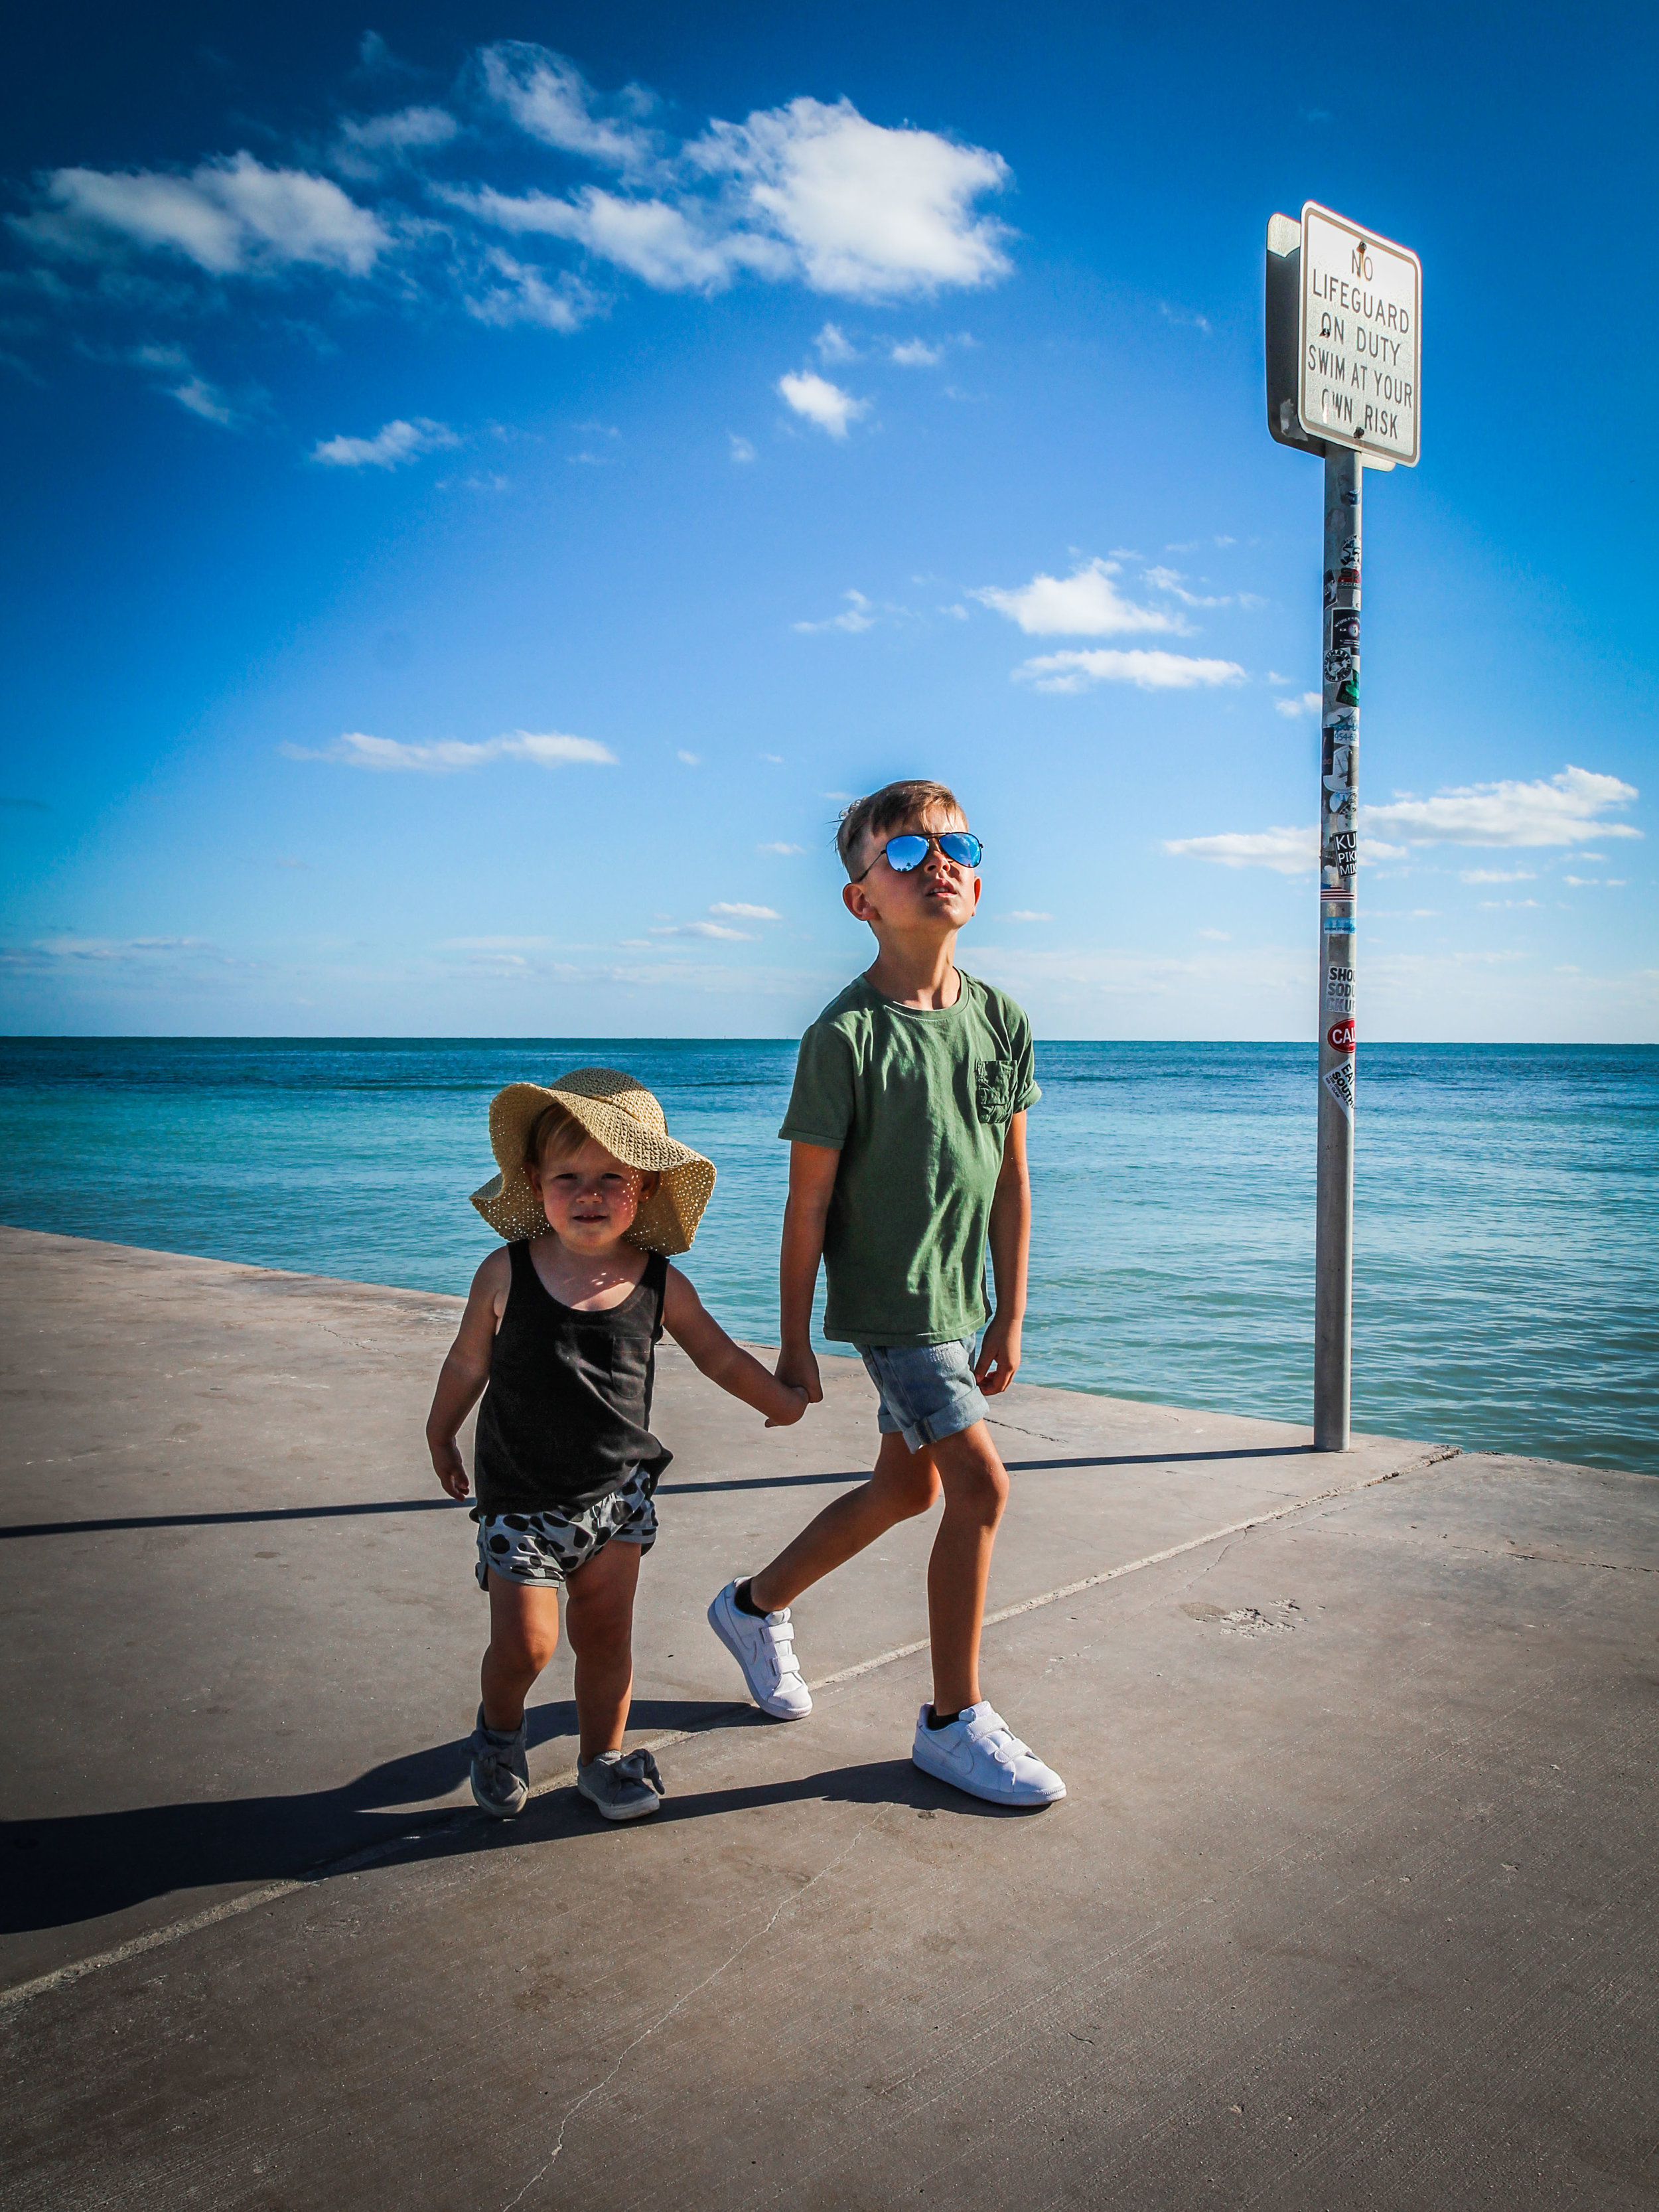 Florida_keys-_Key_west_To_do_reizen_met_kinderen-28.jpg